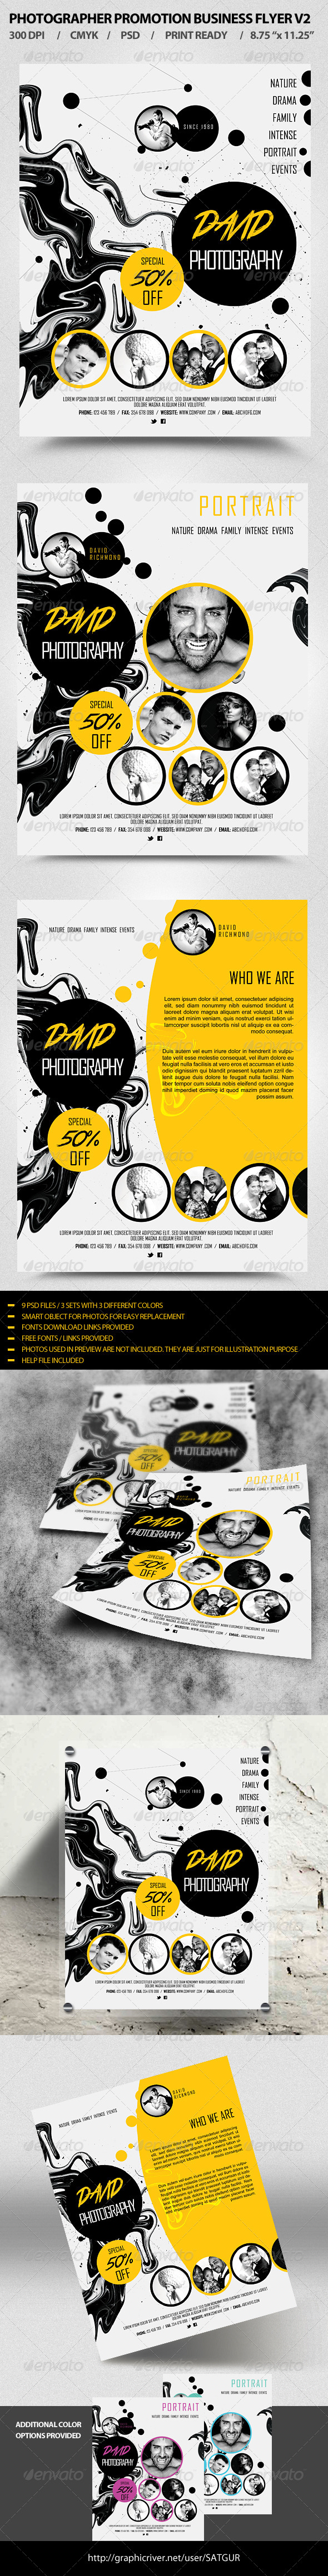 Photographer Business Promotion Flyer Template V2 - Flyers Print Templates